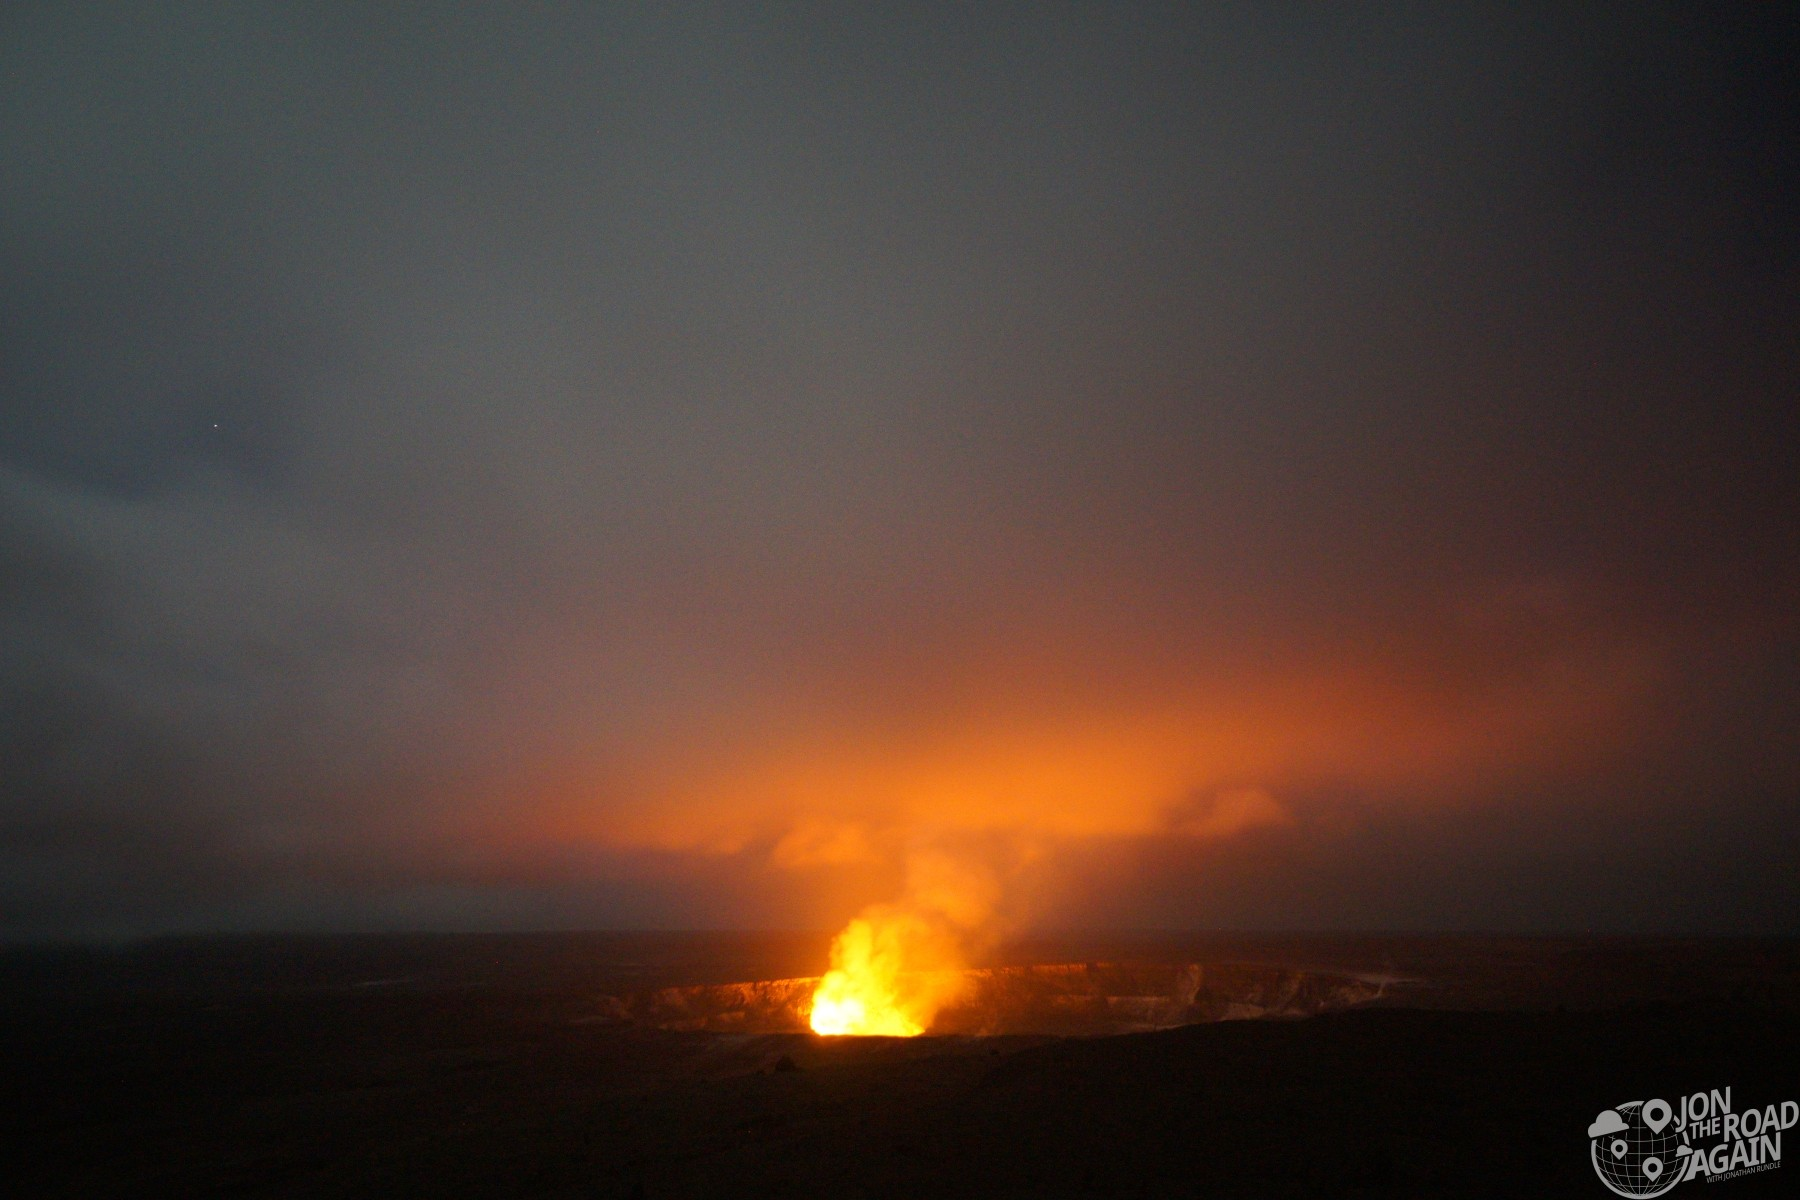 Kilauea crater at night